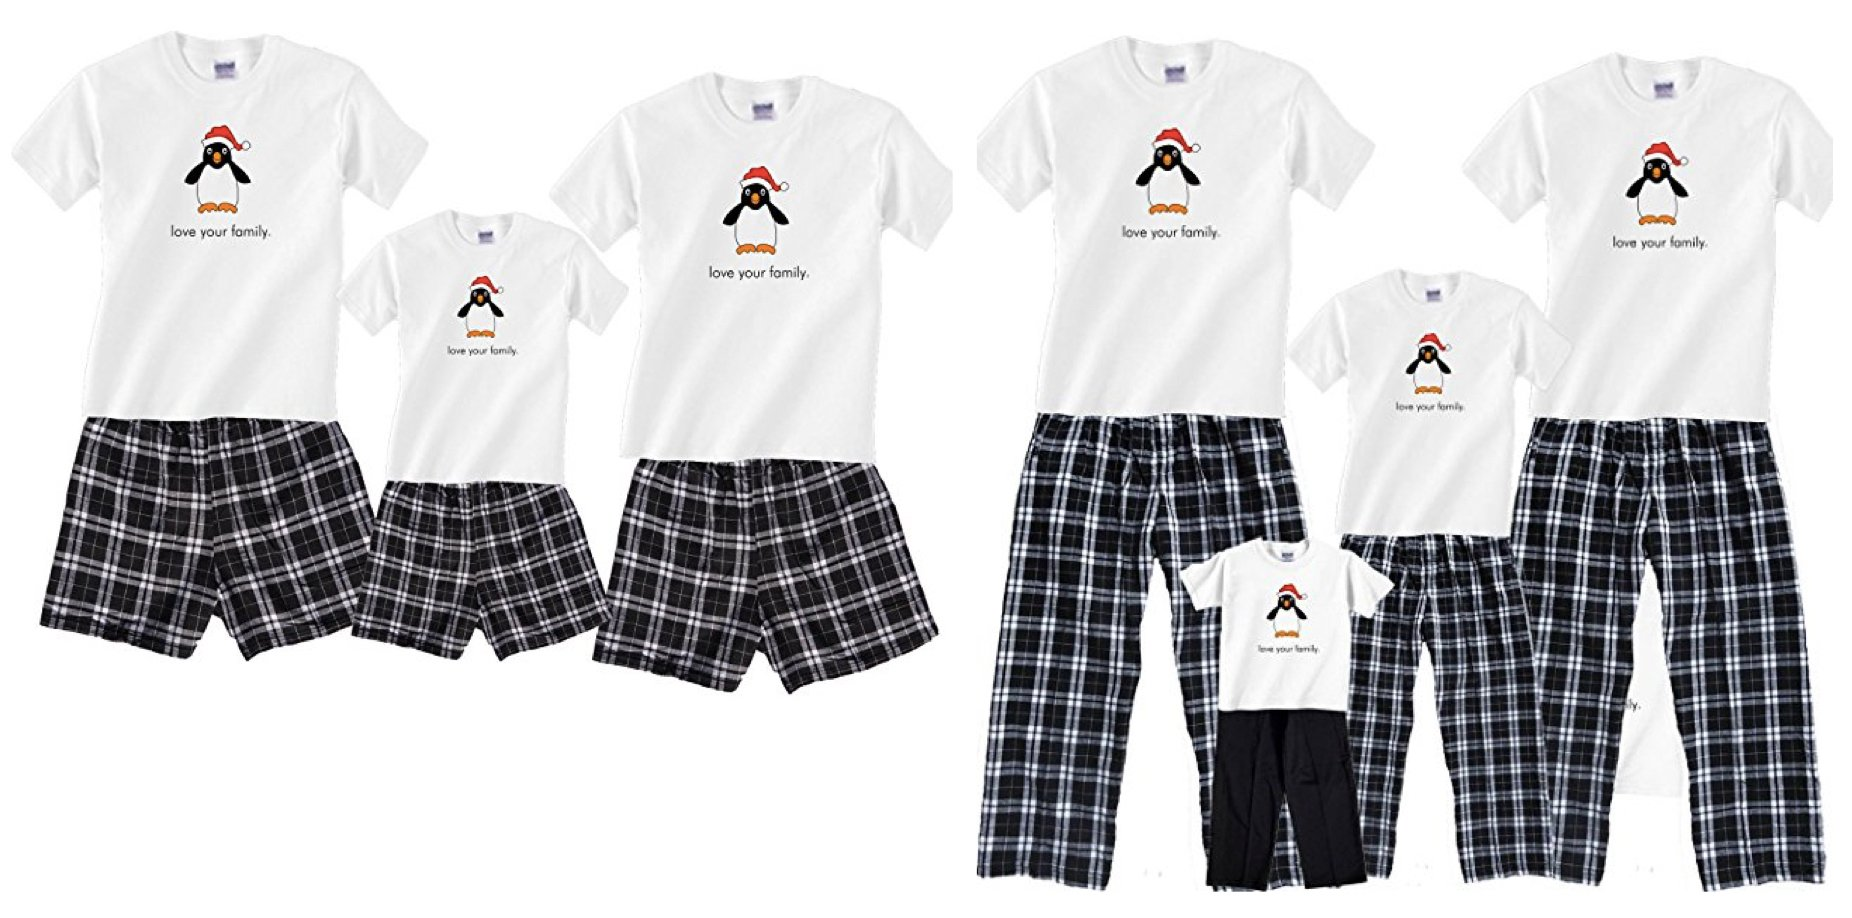 Matching Family Penguin Boxer Short Holiday Pajamas, Summer Christmas Matching Family Pajamas